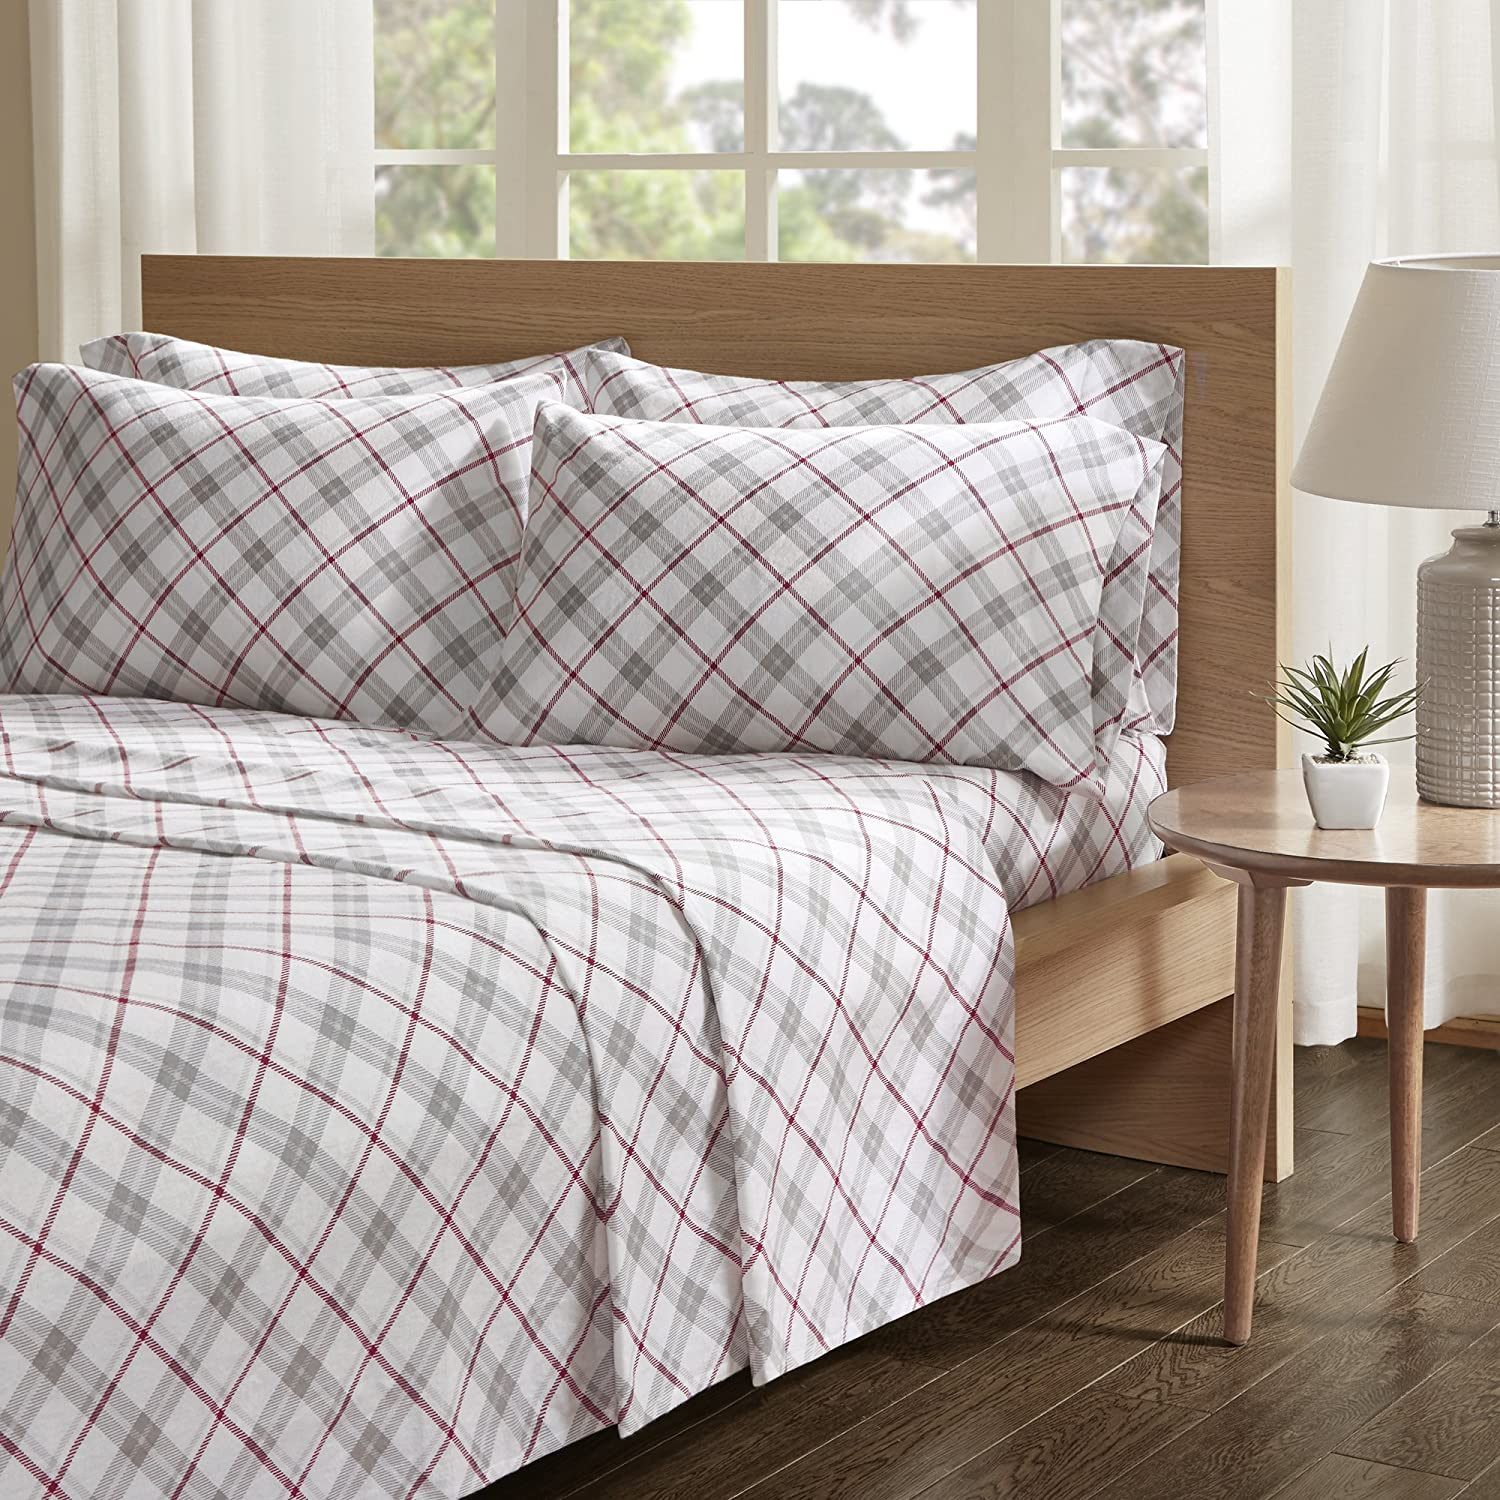 Amazon Com Comfort Spaces 100 Cotton Flannel Soft Deep Pocket Bedding Sets 6 Pieces 1 Fitted 1 Flat 4 Pillow Cases King Size Sheets Plaid Red Grey Home Kitchen